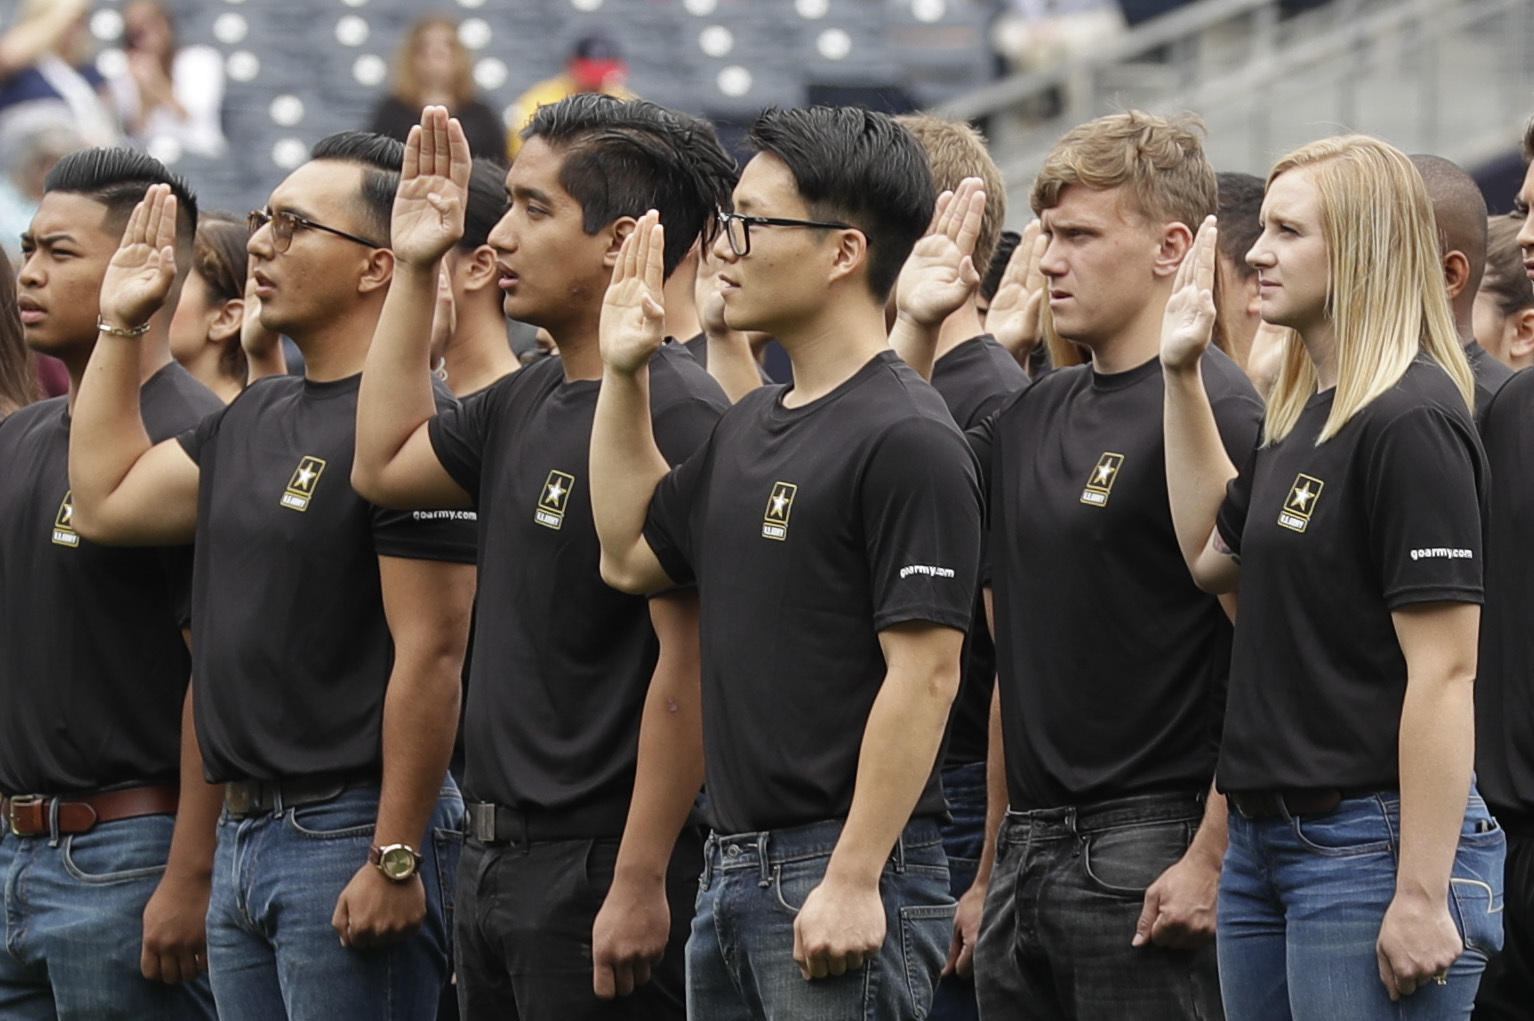 Does what swearing into the military mean best photo